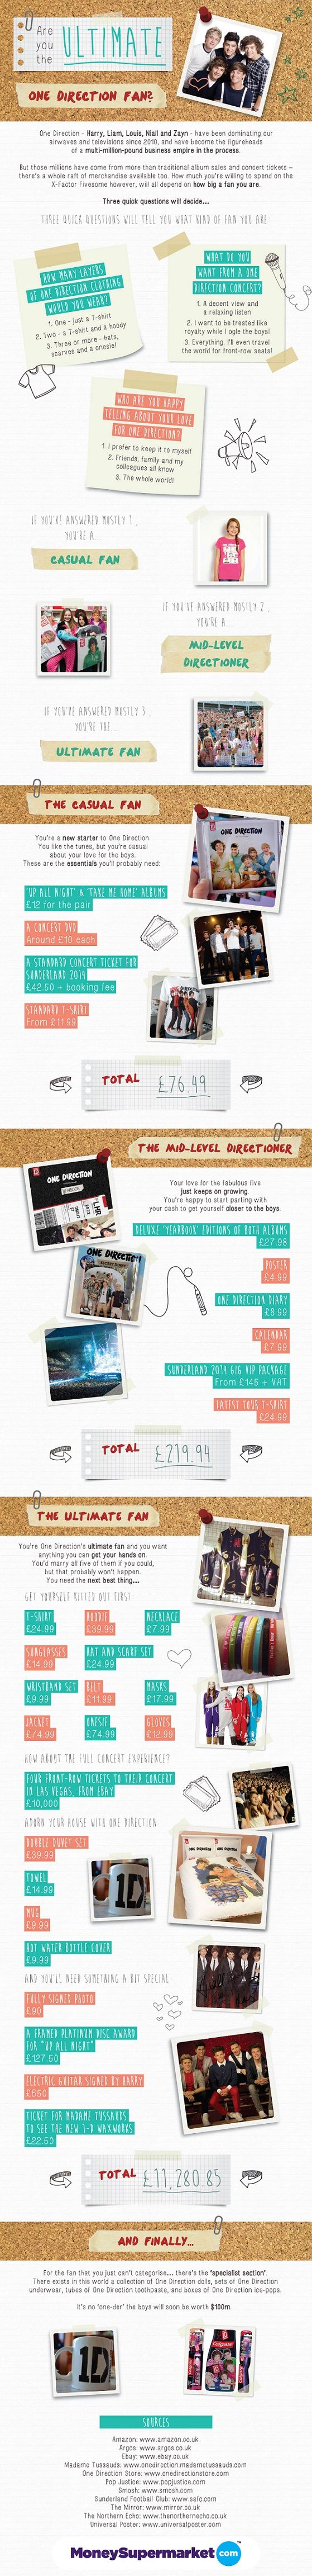 #INFOgraphic > 1 Direction Fan Cost: Die hard fan of One Direction? How deep in your parents pocket would you go to get the bands merchandise, buy concert tickets and be crowned as the ulitmate 1D fan? This infographic will tell you what kind of fan you are.  > http://infographicsmania.com/1-direction-fan-cost/